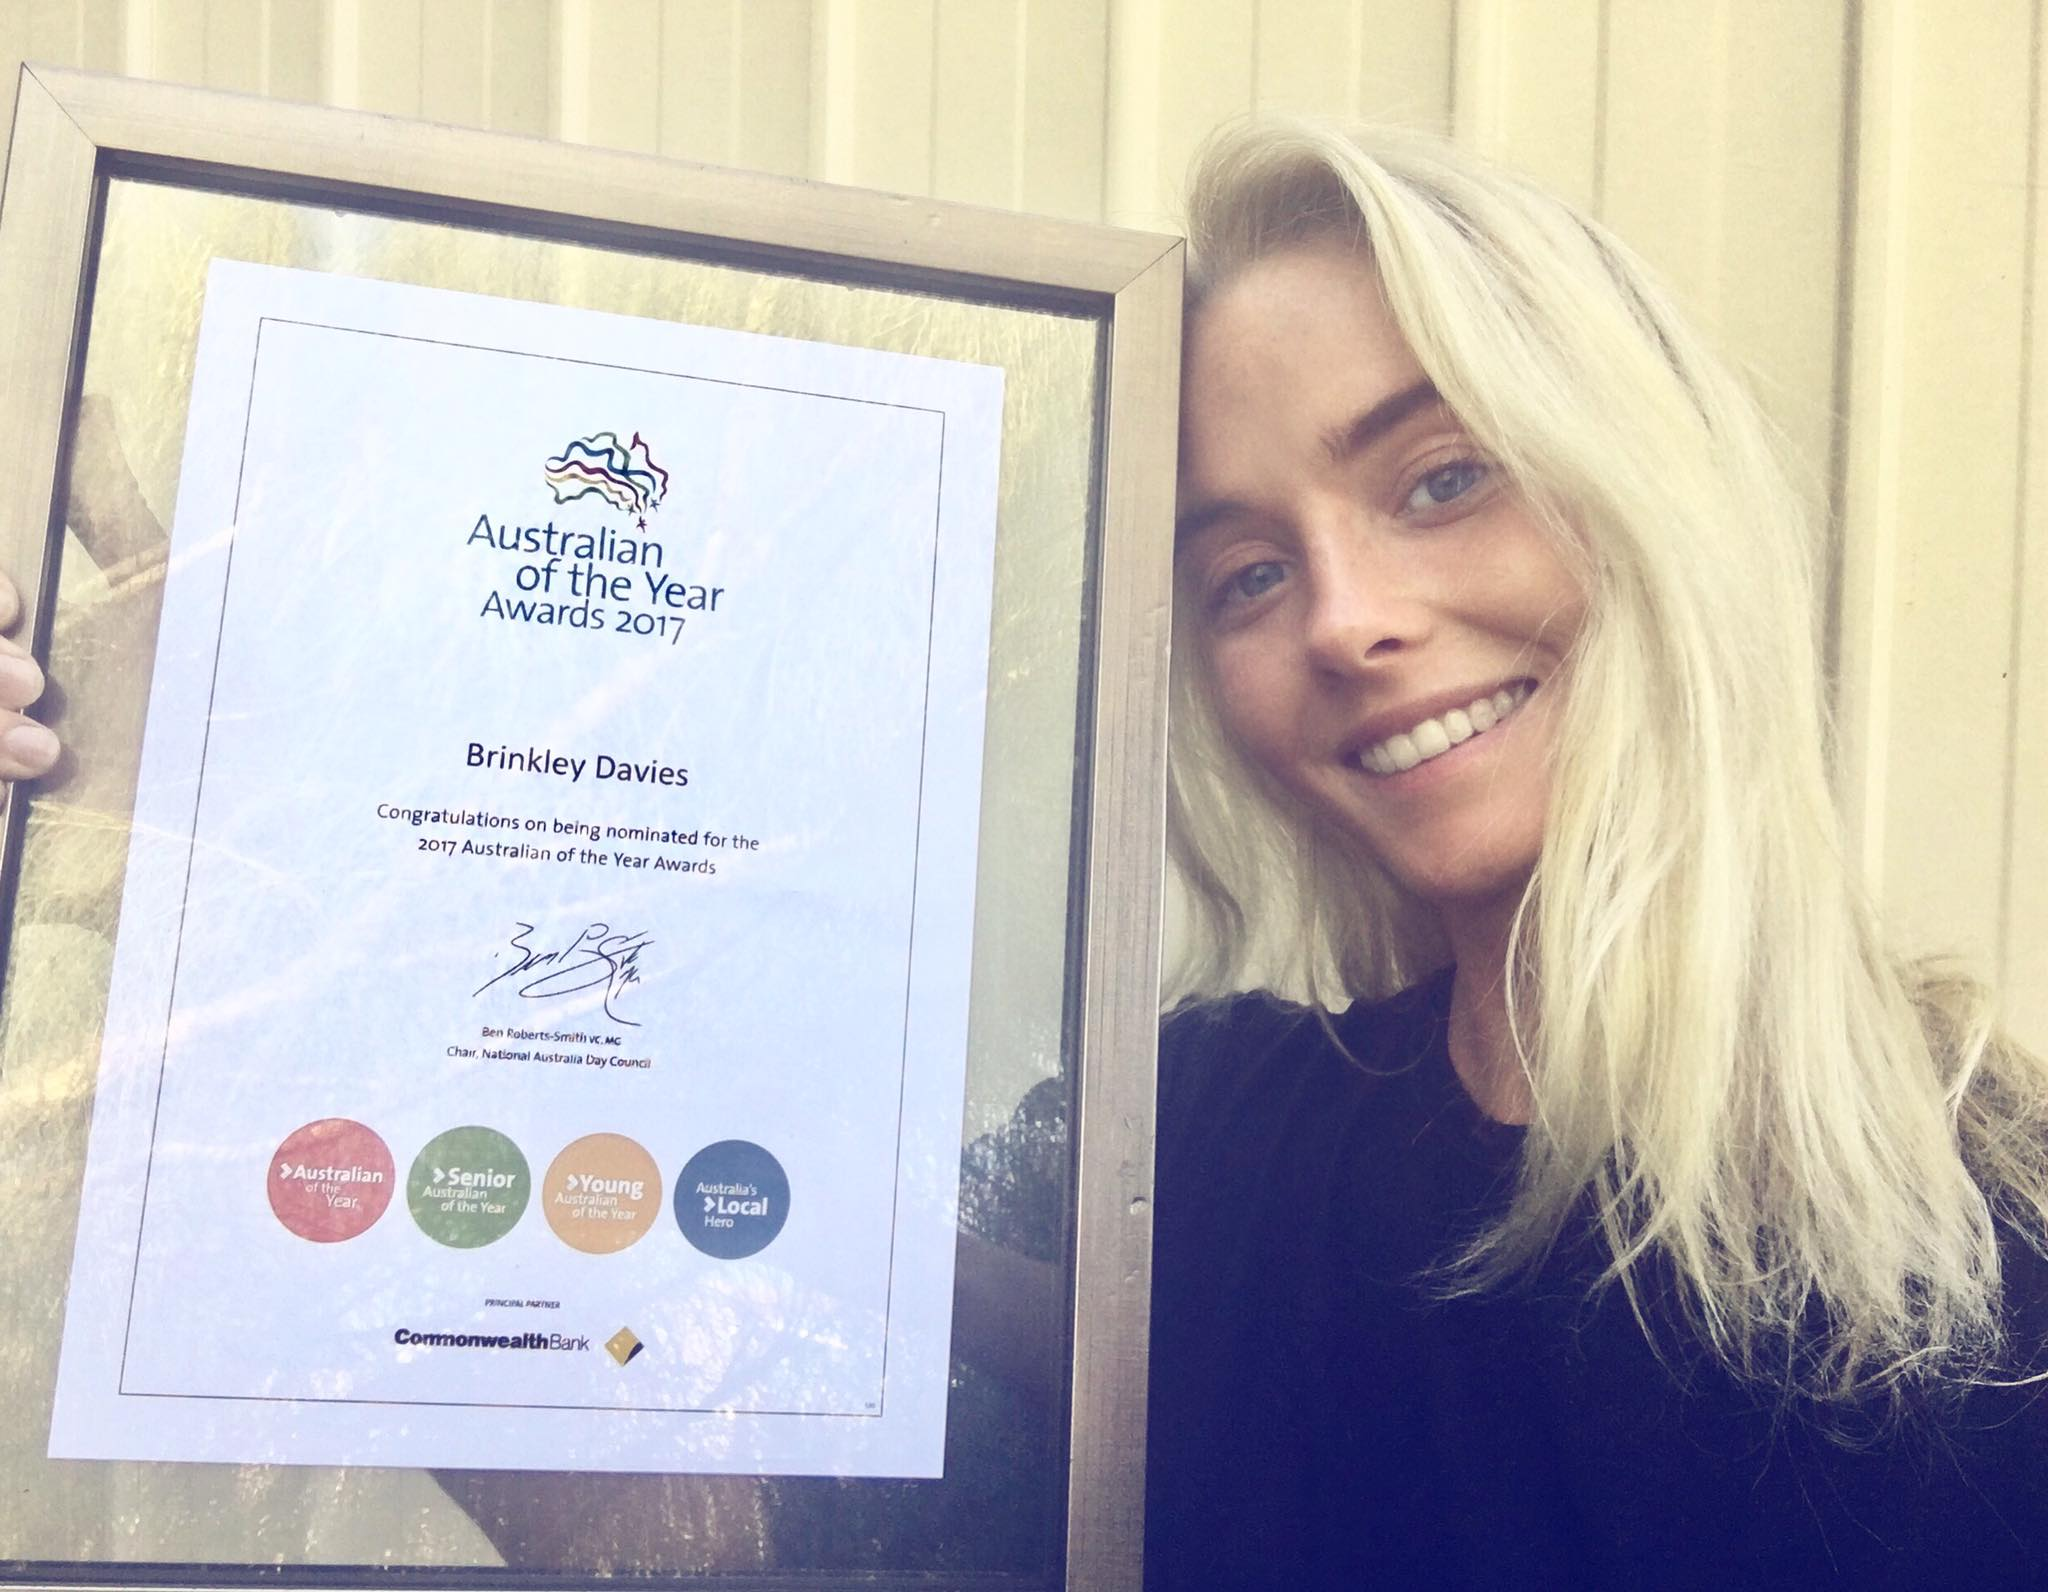 In 2017 and 2018, Brinkley was an voted as an official nominee for Australian of the Year award, among 12 other young Australians.